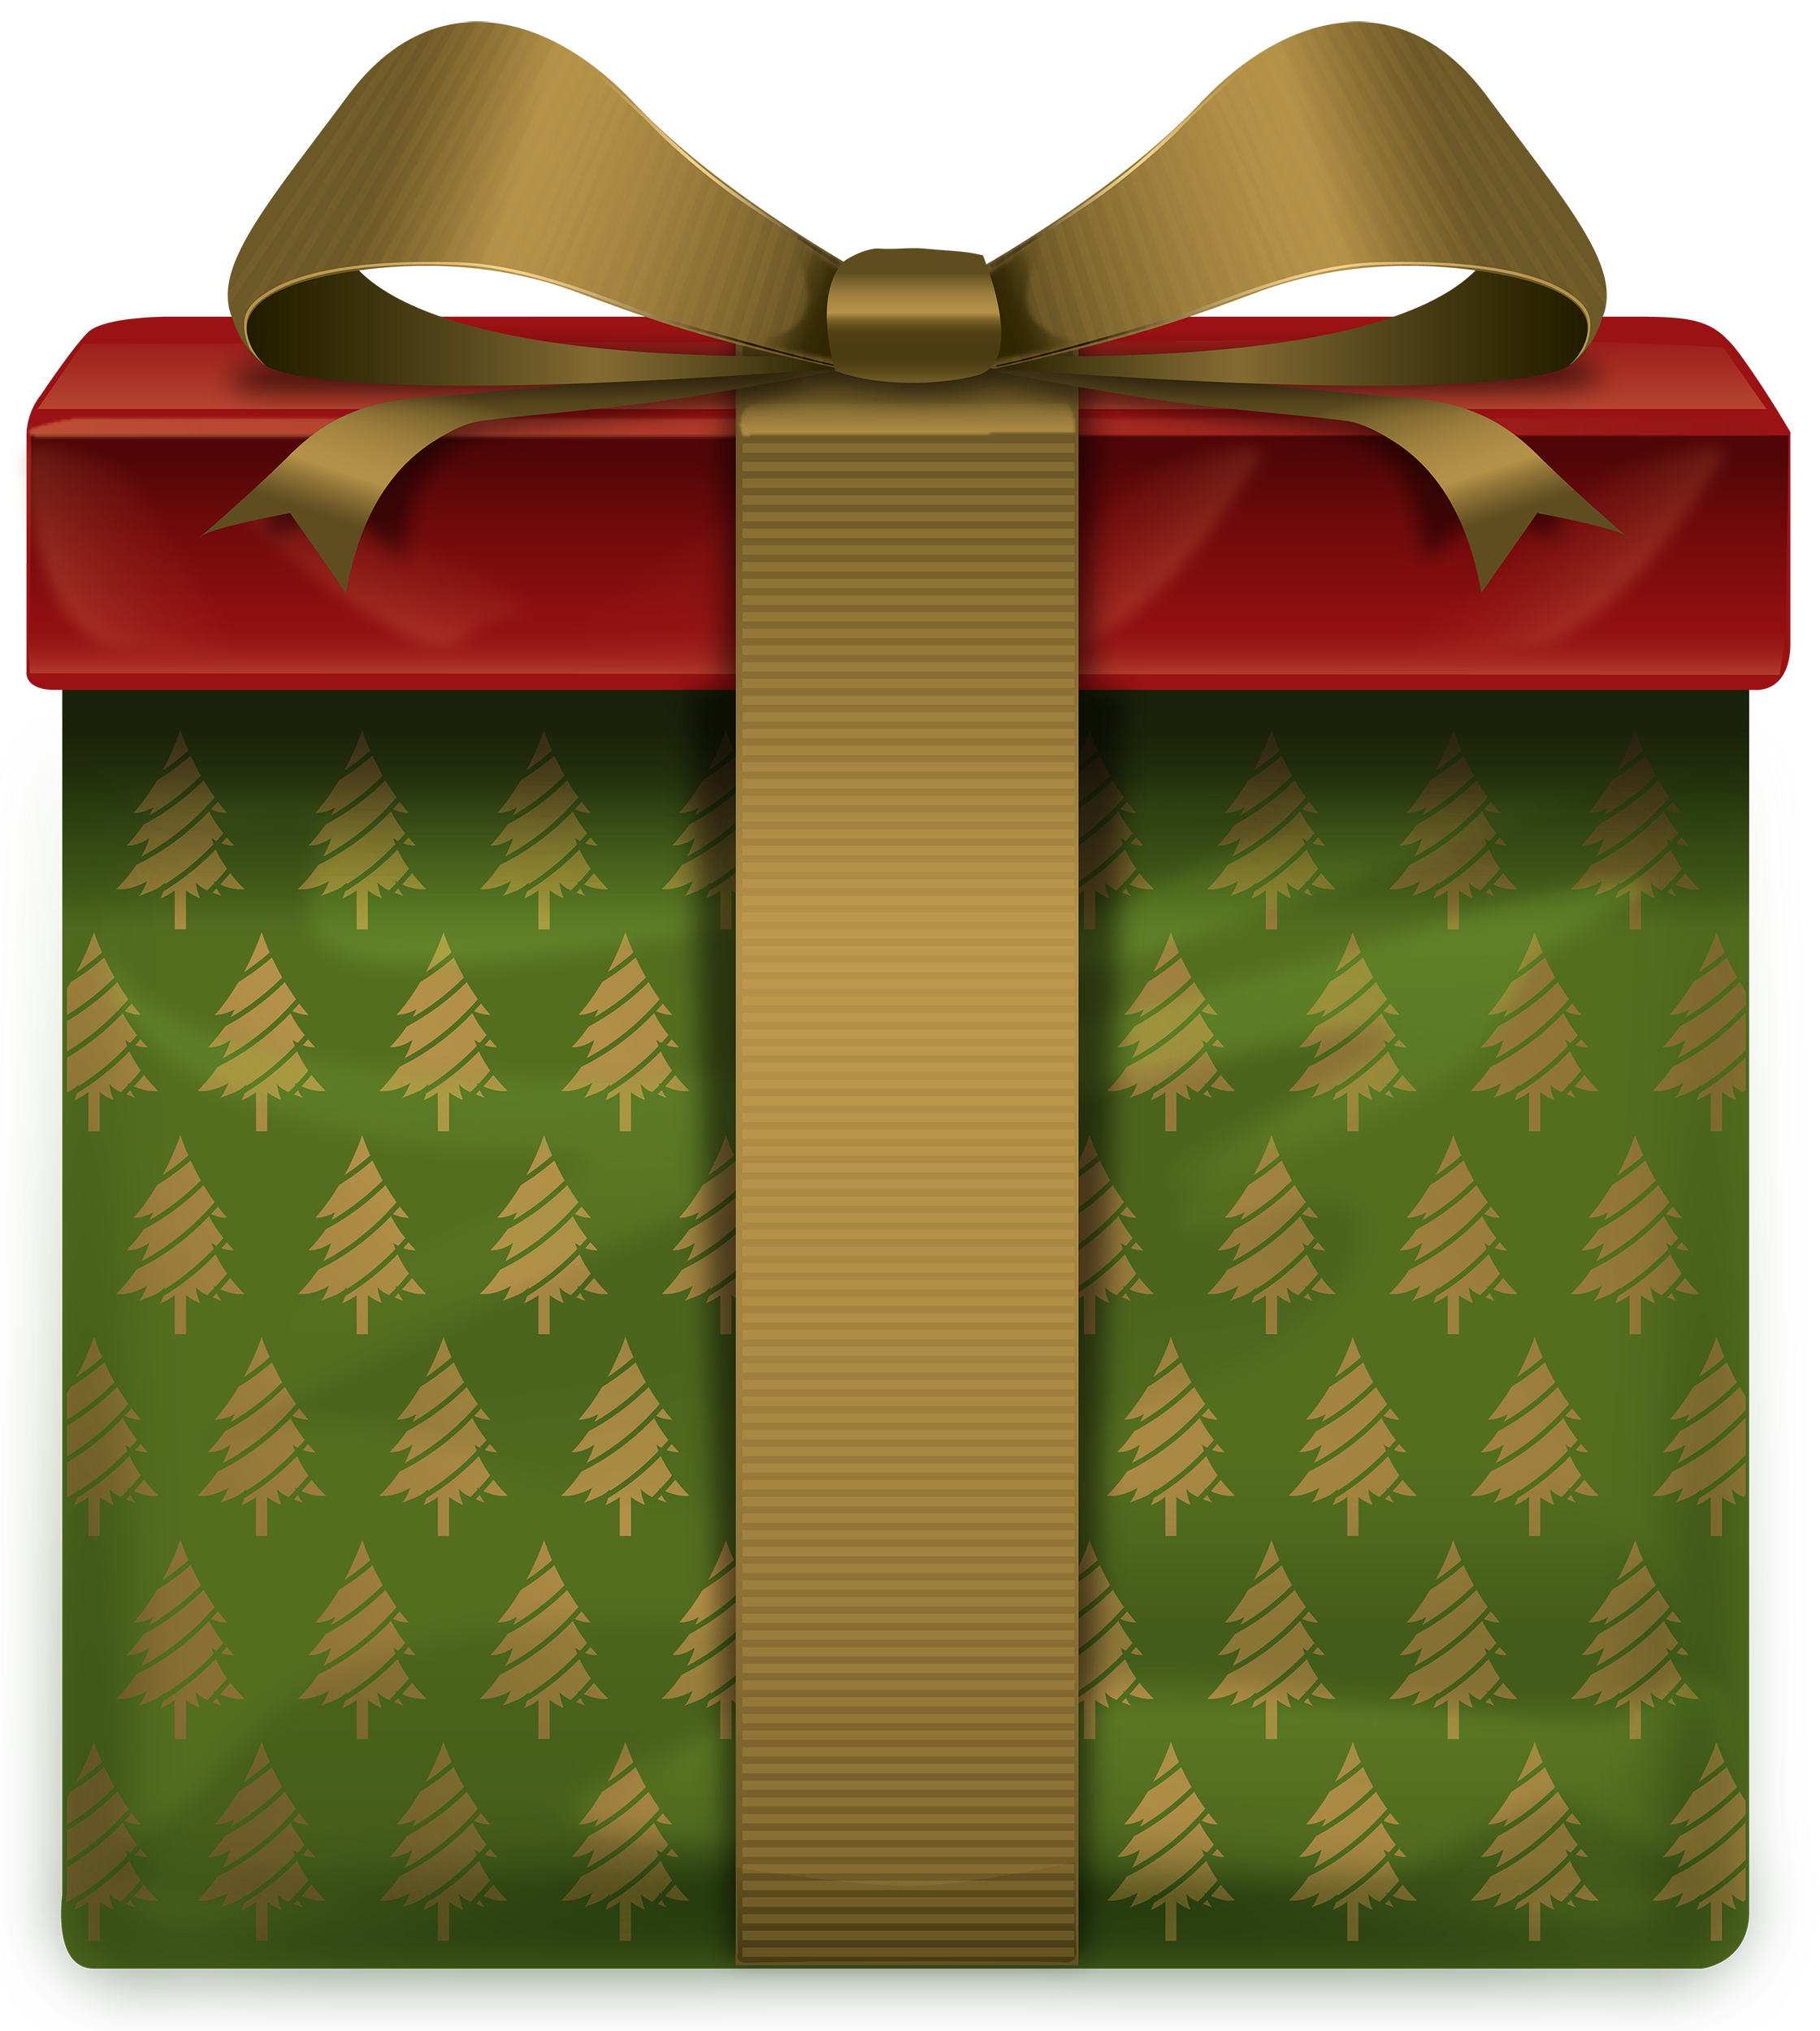 Christmas Presents Png.Christmas Present Png Clipart Best Web 501941 Png